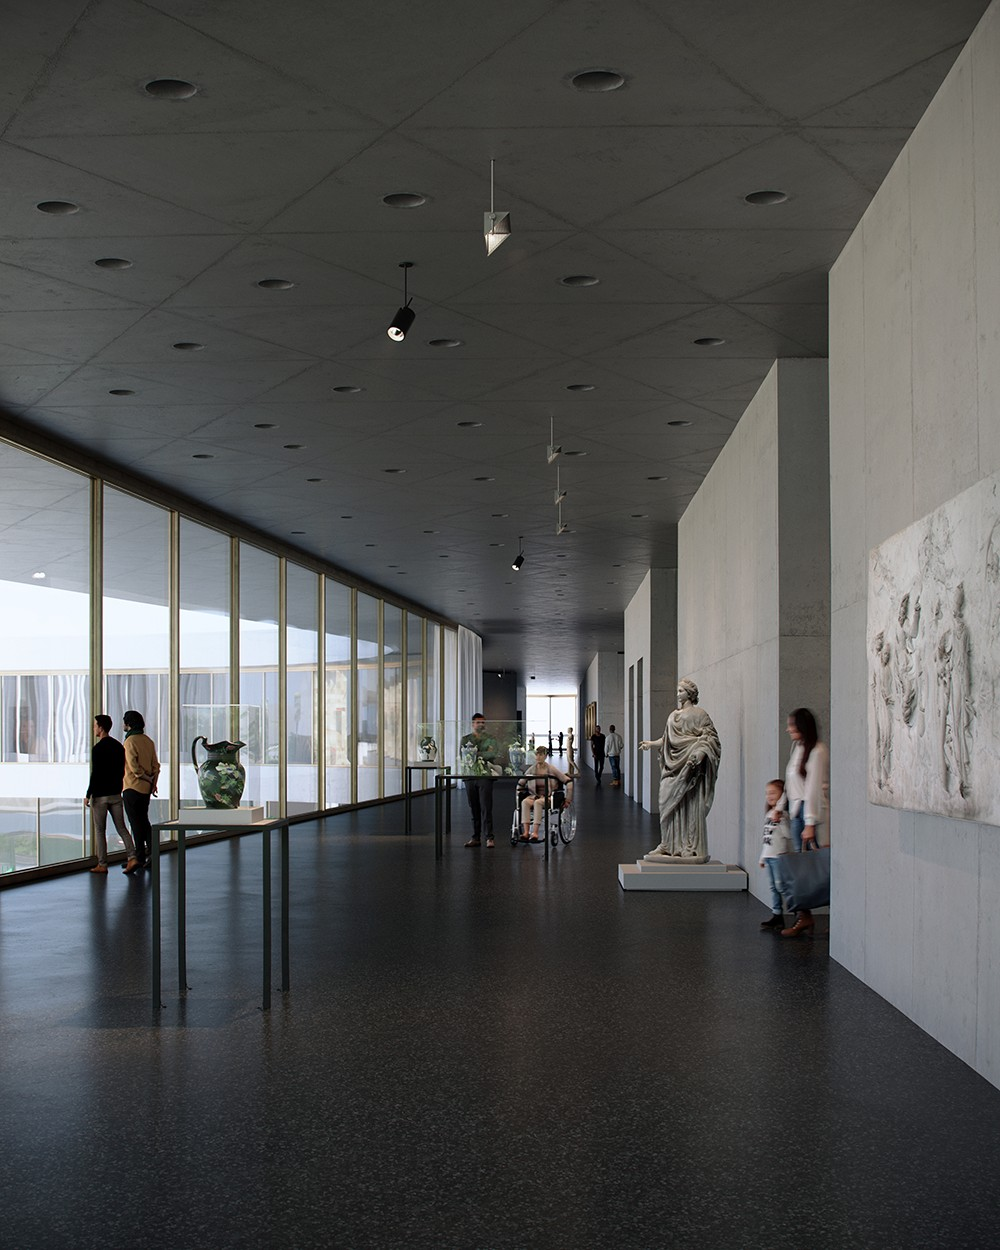 Terrace and south entrance galleries facing north, exhibition level; Atelier Peter Zumthor & Partner/The Boundary